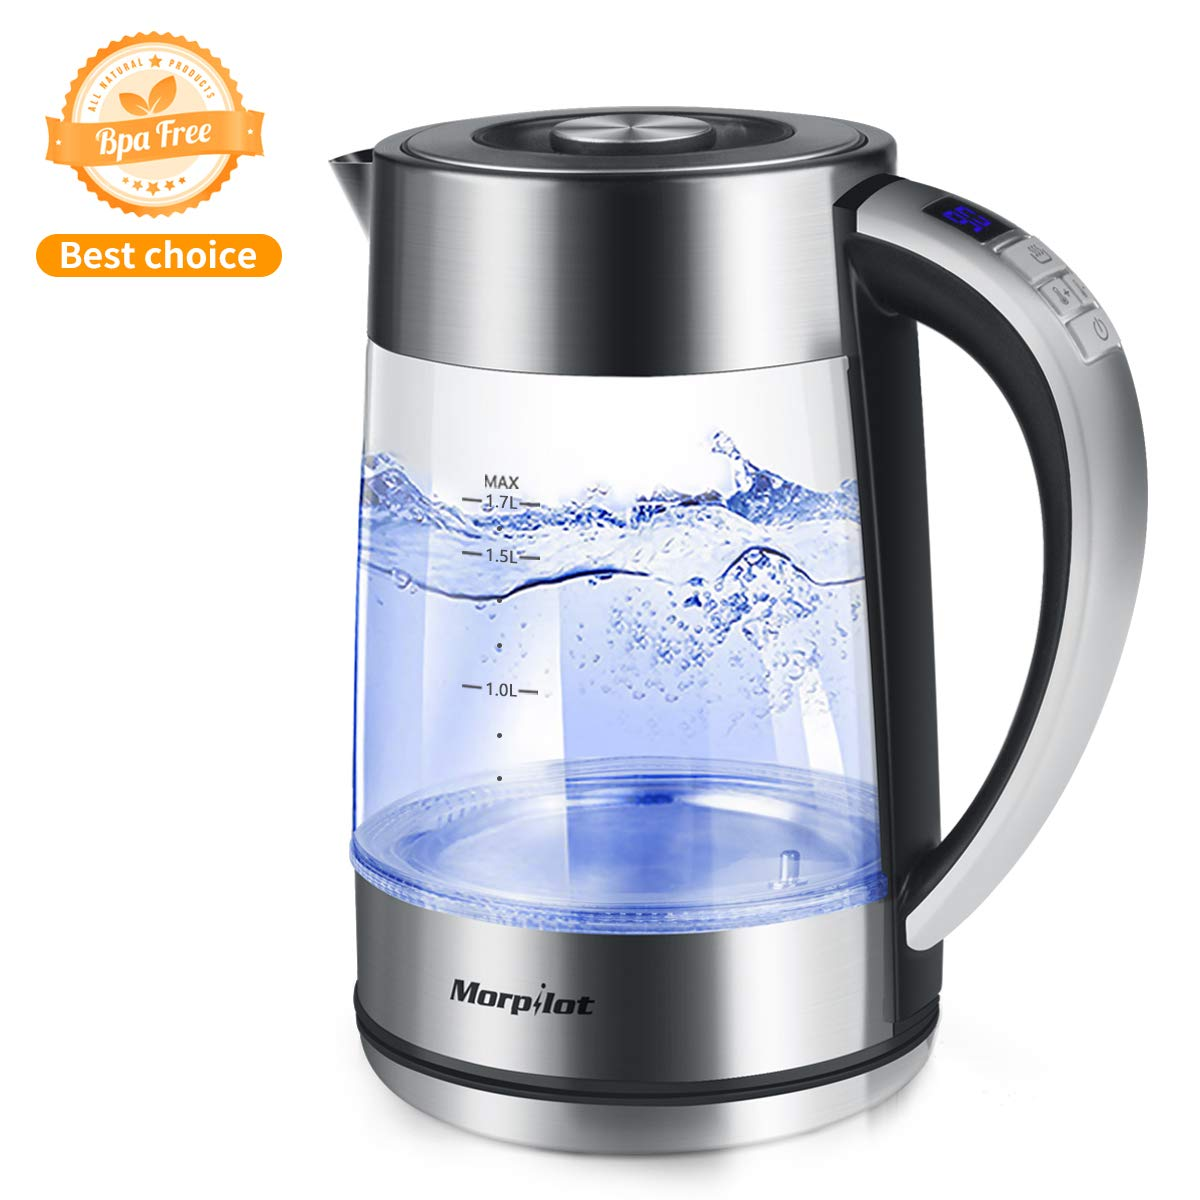 Very nice electric kettle